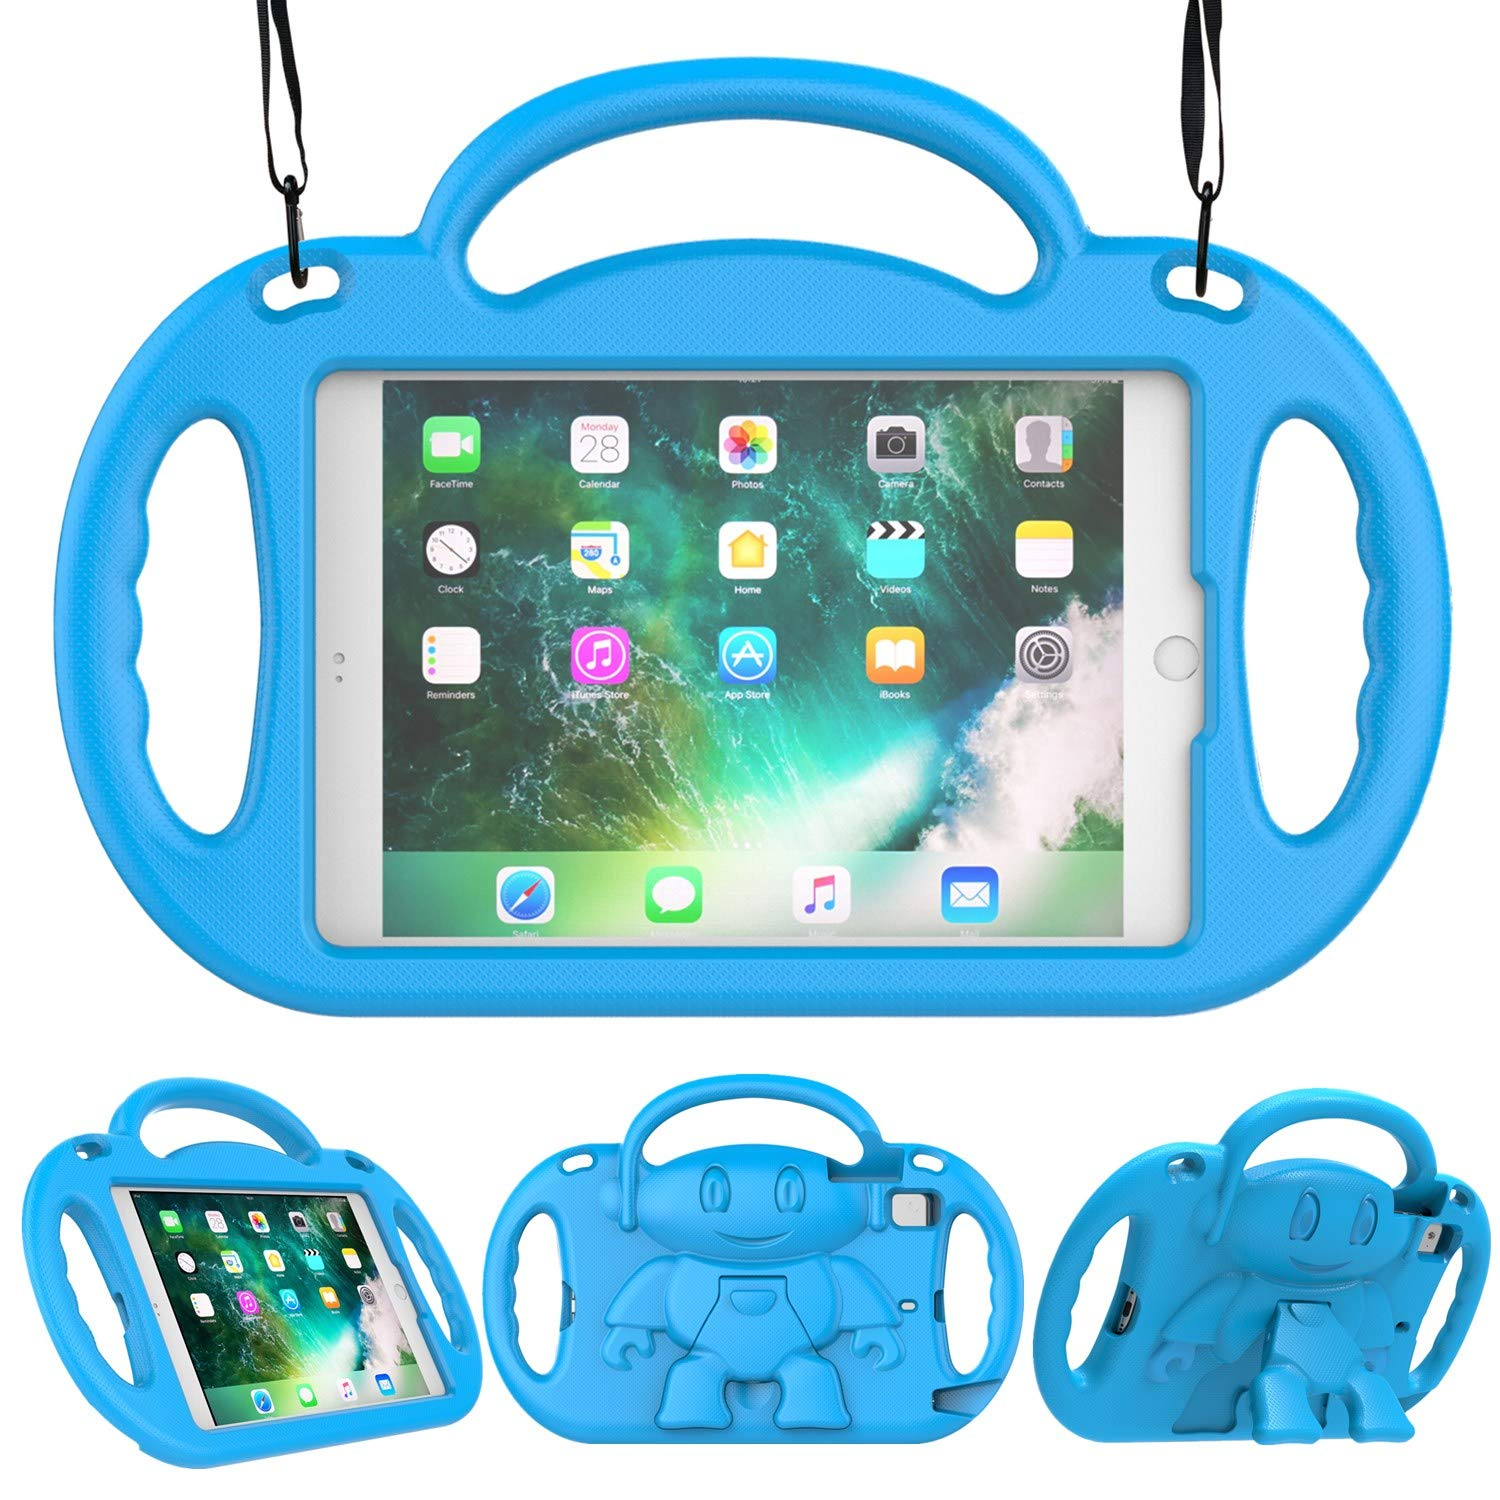 LEDNICEKER Kids Case for iPad Mini 1 2 3 4 - Light Weight Shockproof Handle Friendly Convertible Stand Kids Case with Built-in Kickstand & Shoulder Strap for iPad Mini, Mini 4, Mini 3, Mini 2 - Blue